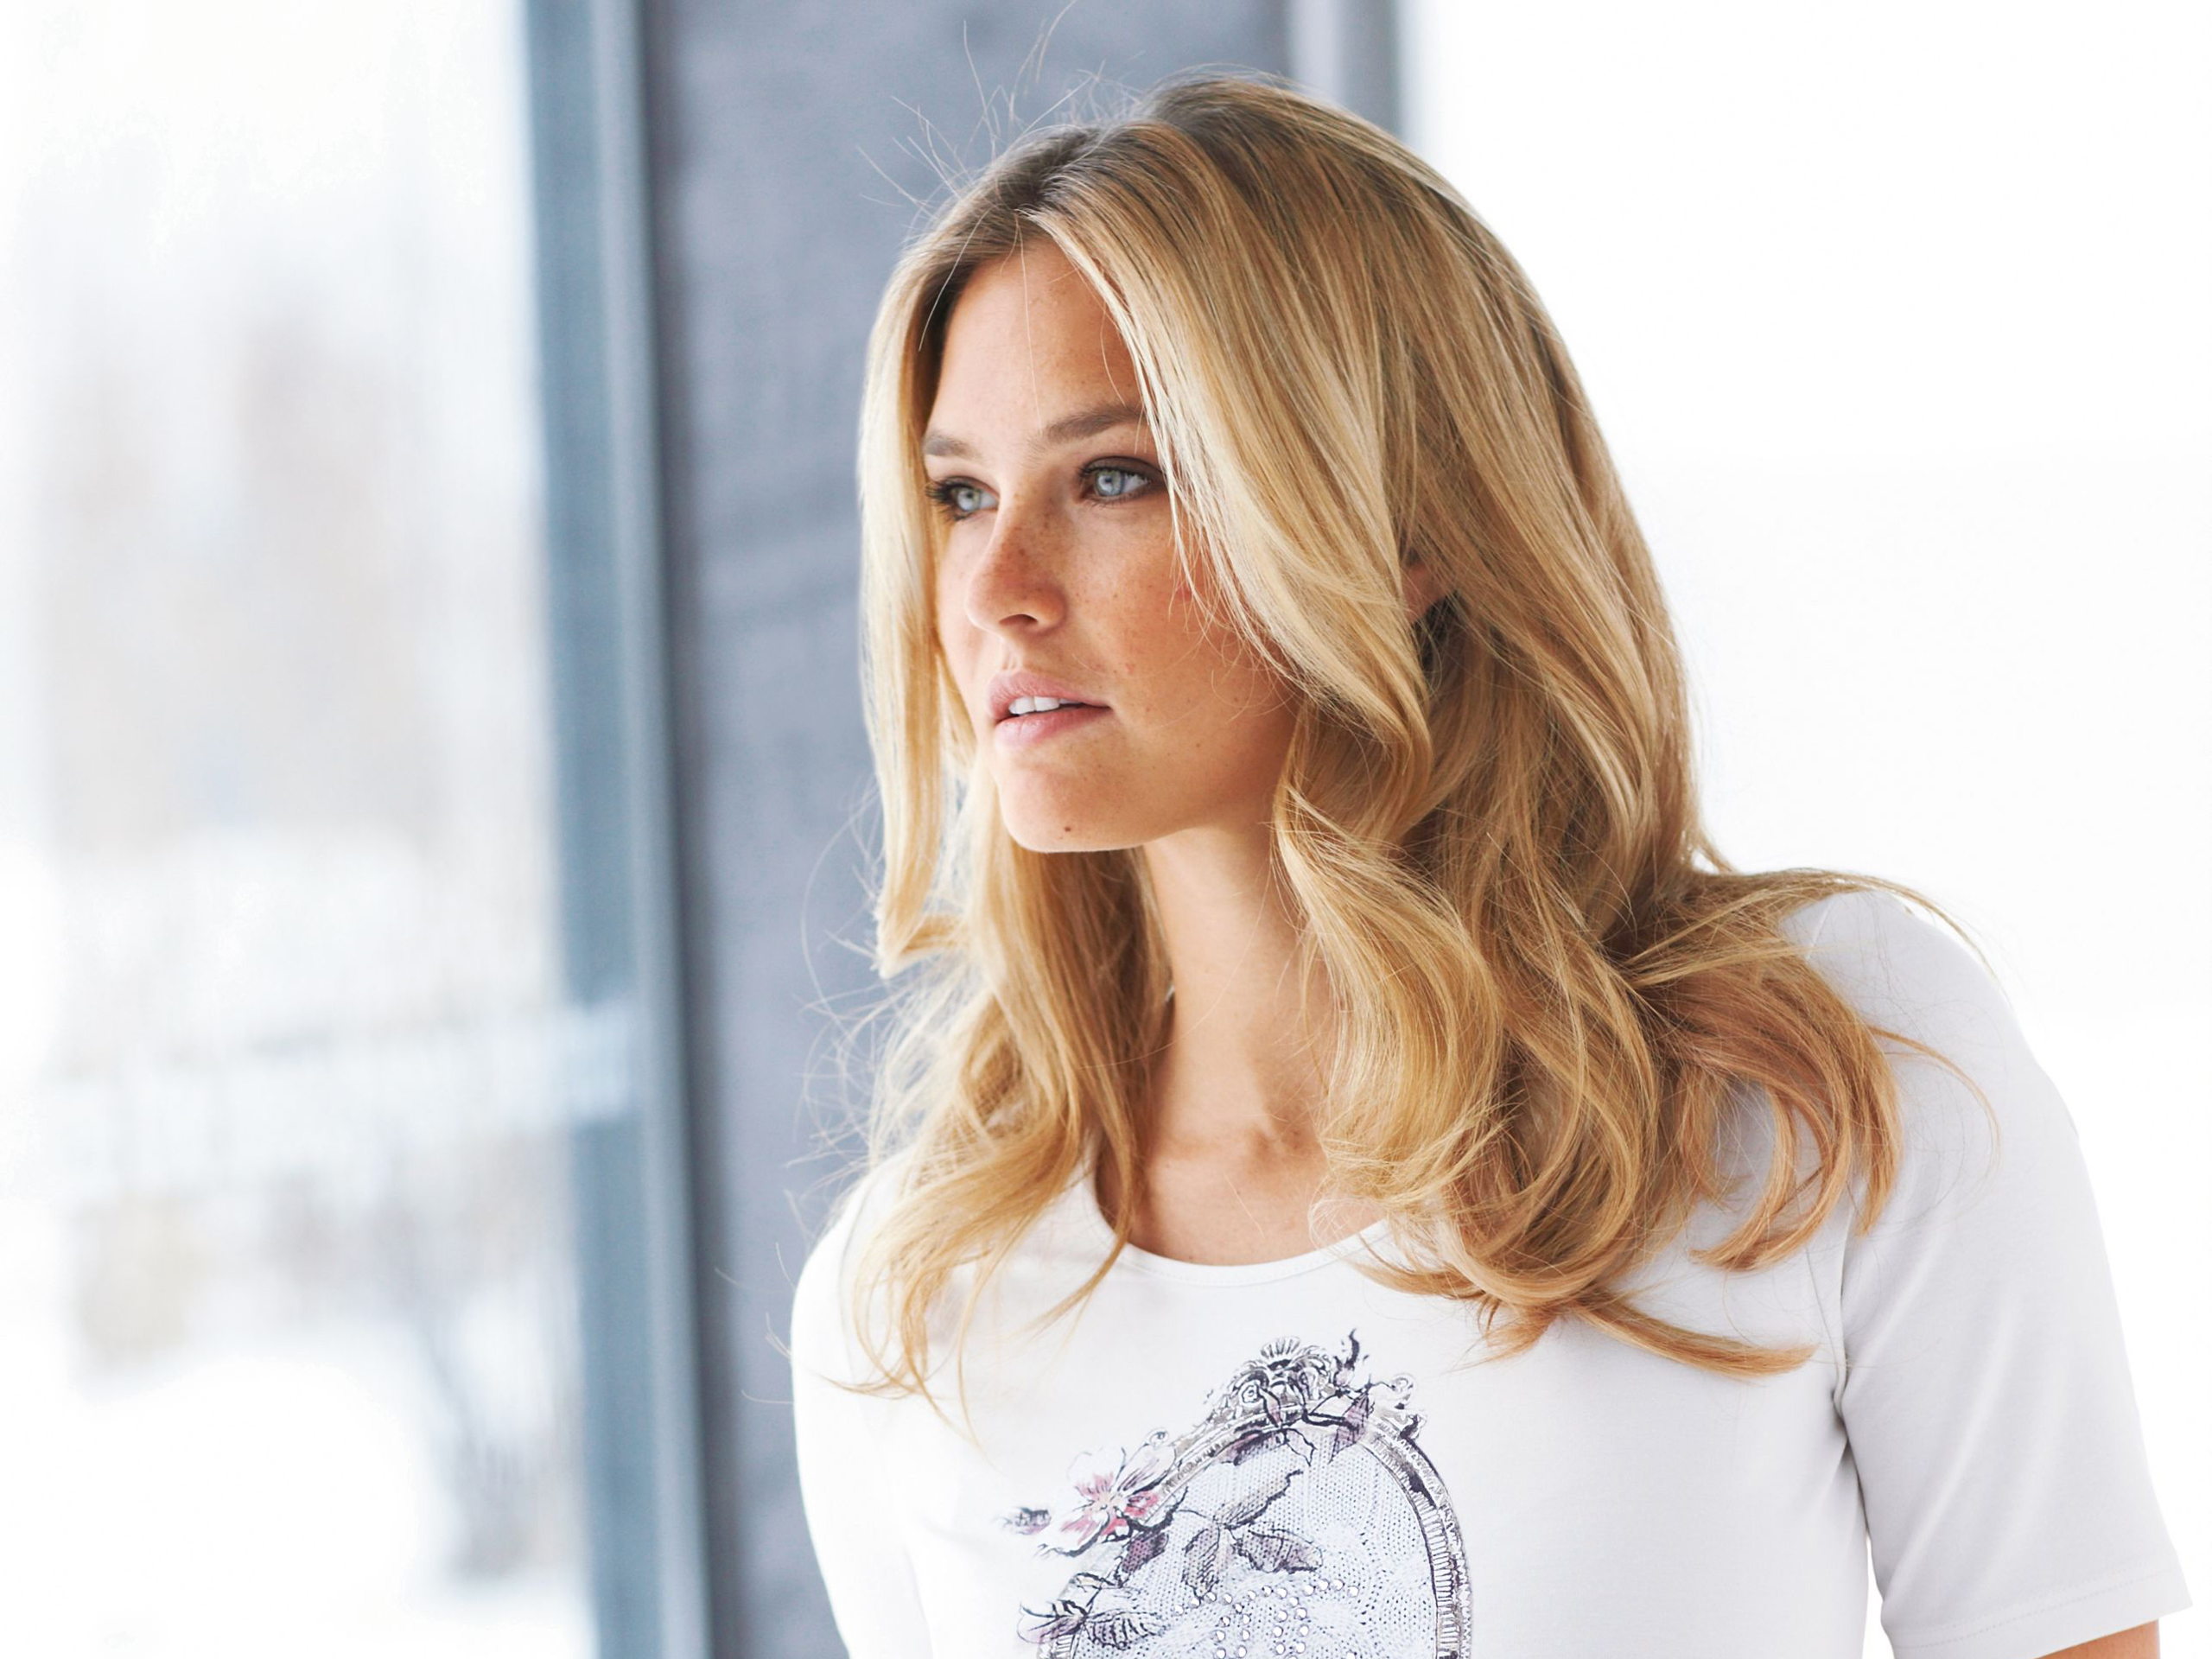 Bar Refaeli | Free Desktop Wallpapers for HD, Widescreen and Mobile ... Bar Refaeli